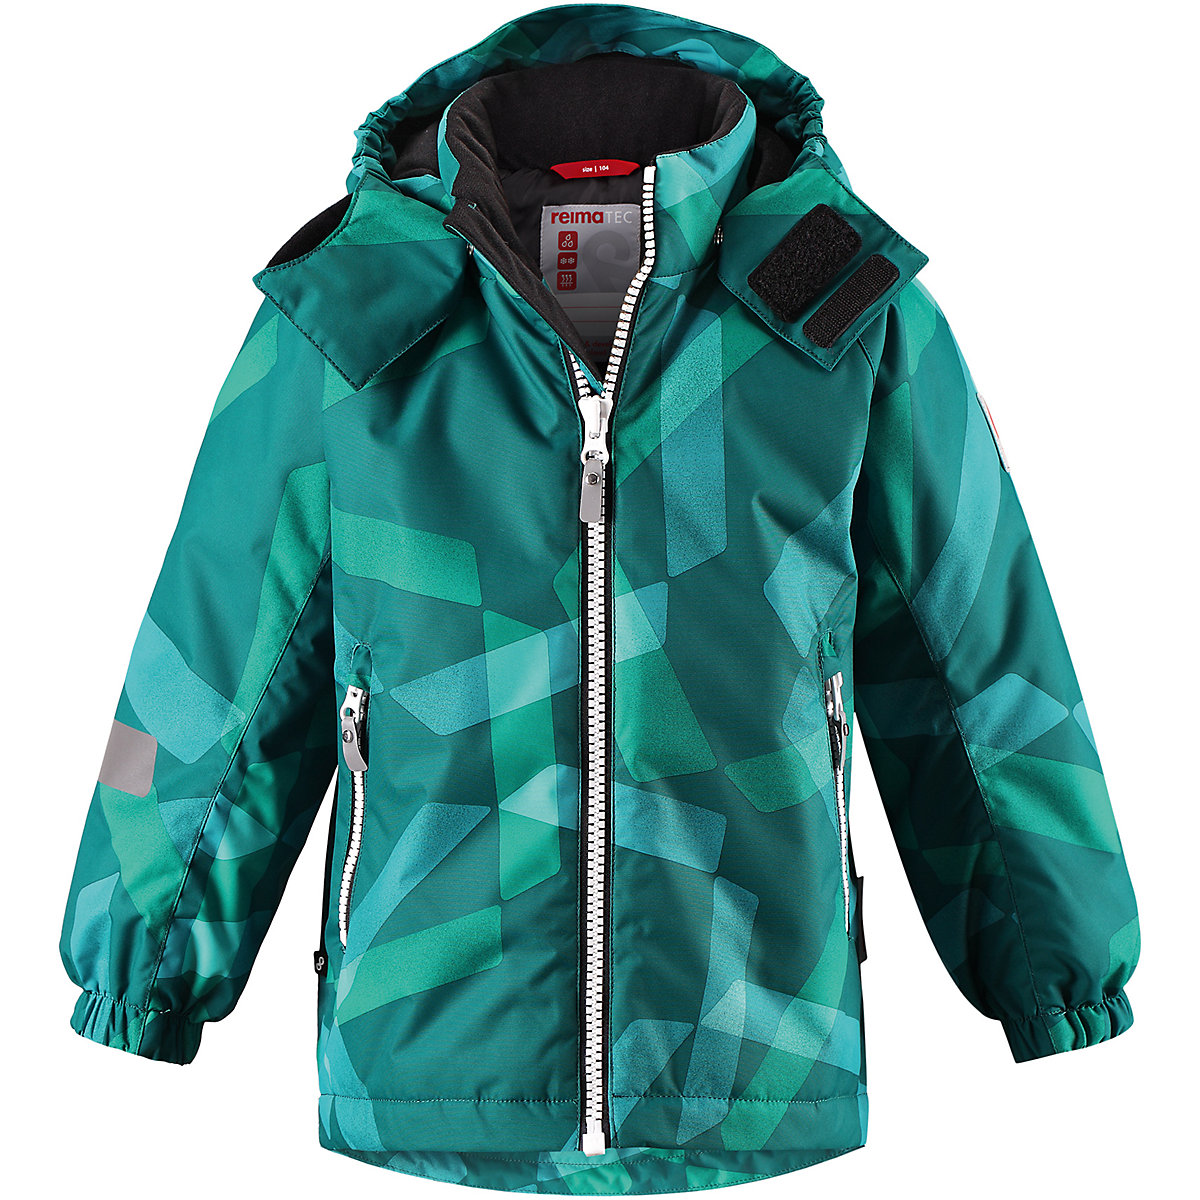 REIMA Jackets & Coats 8637122 for boys baby clothing winter warm boy girl jacket Polyester biboymall winter coat 2017 military coats women cotton wadded hooded jacket casual parkas thickness plus size snow outwear